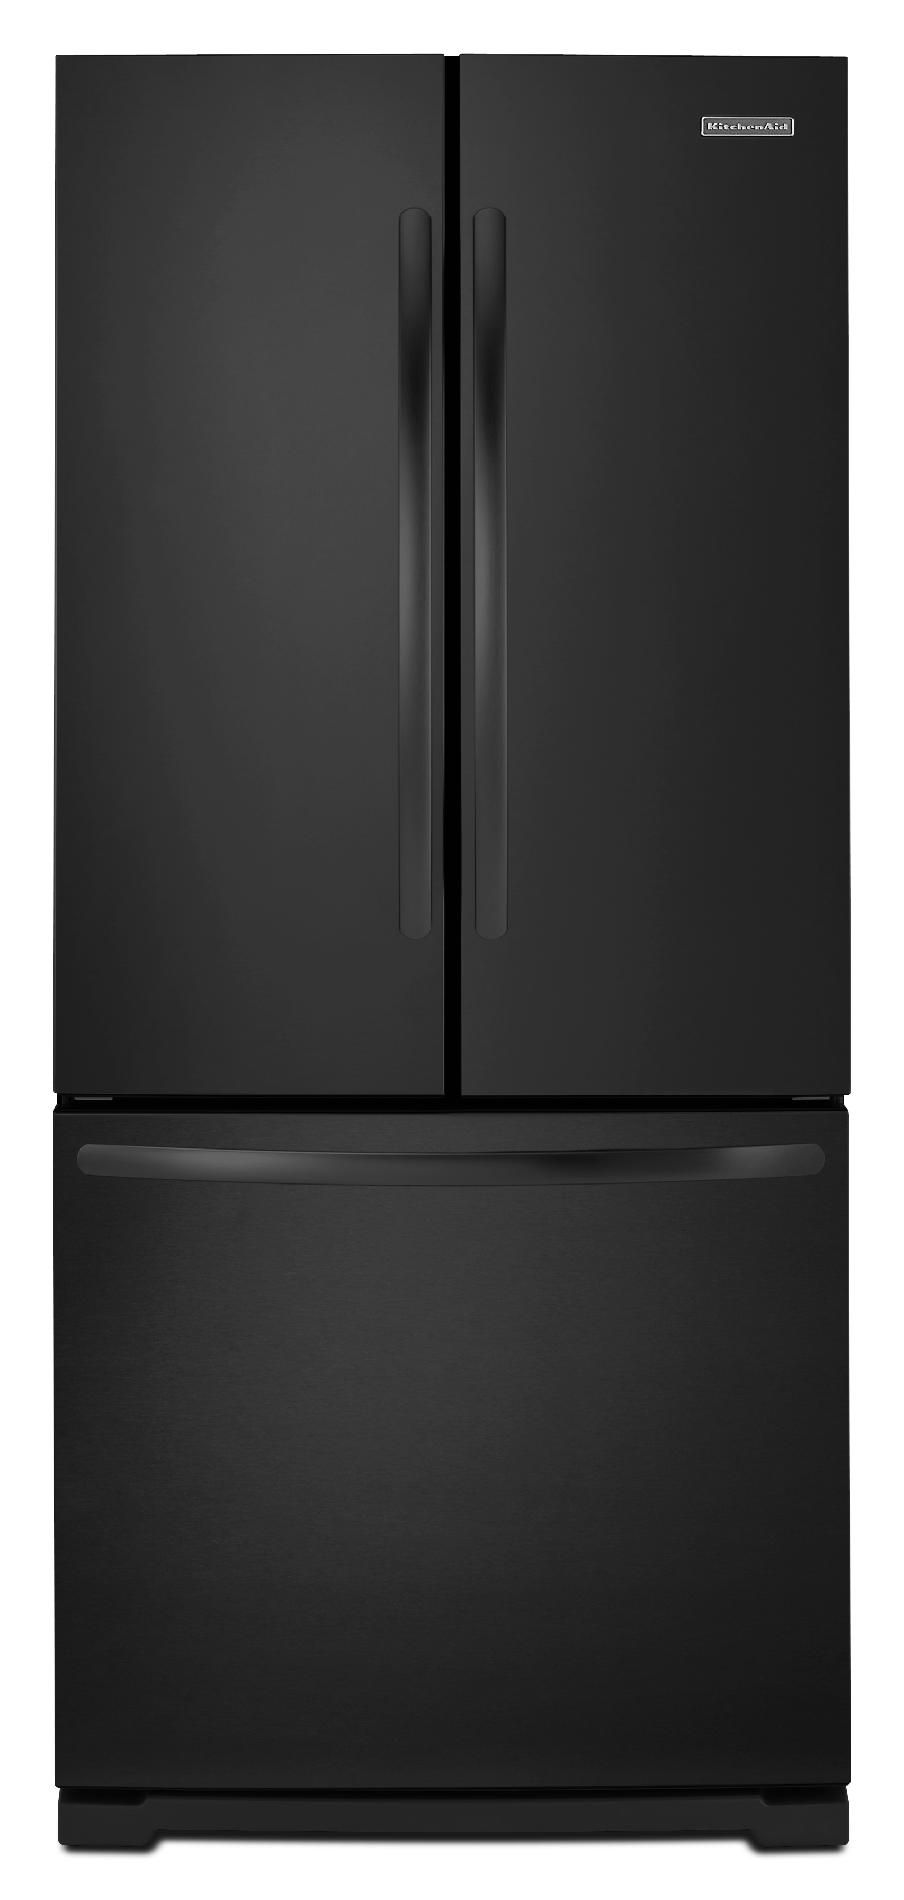 KitchenAid KFFS20EYBL 20 cu. ft. French Door with Internal Dispenser - Black